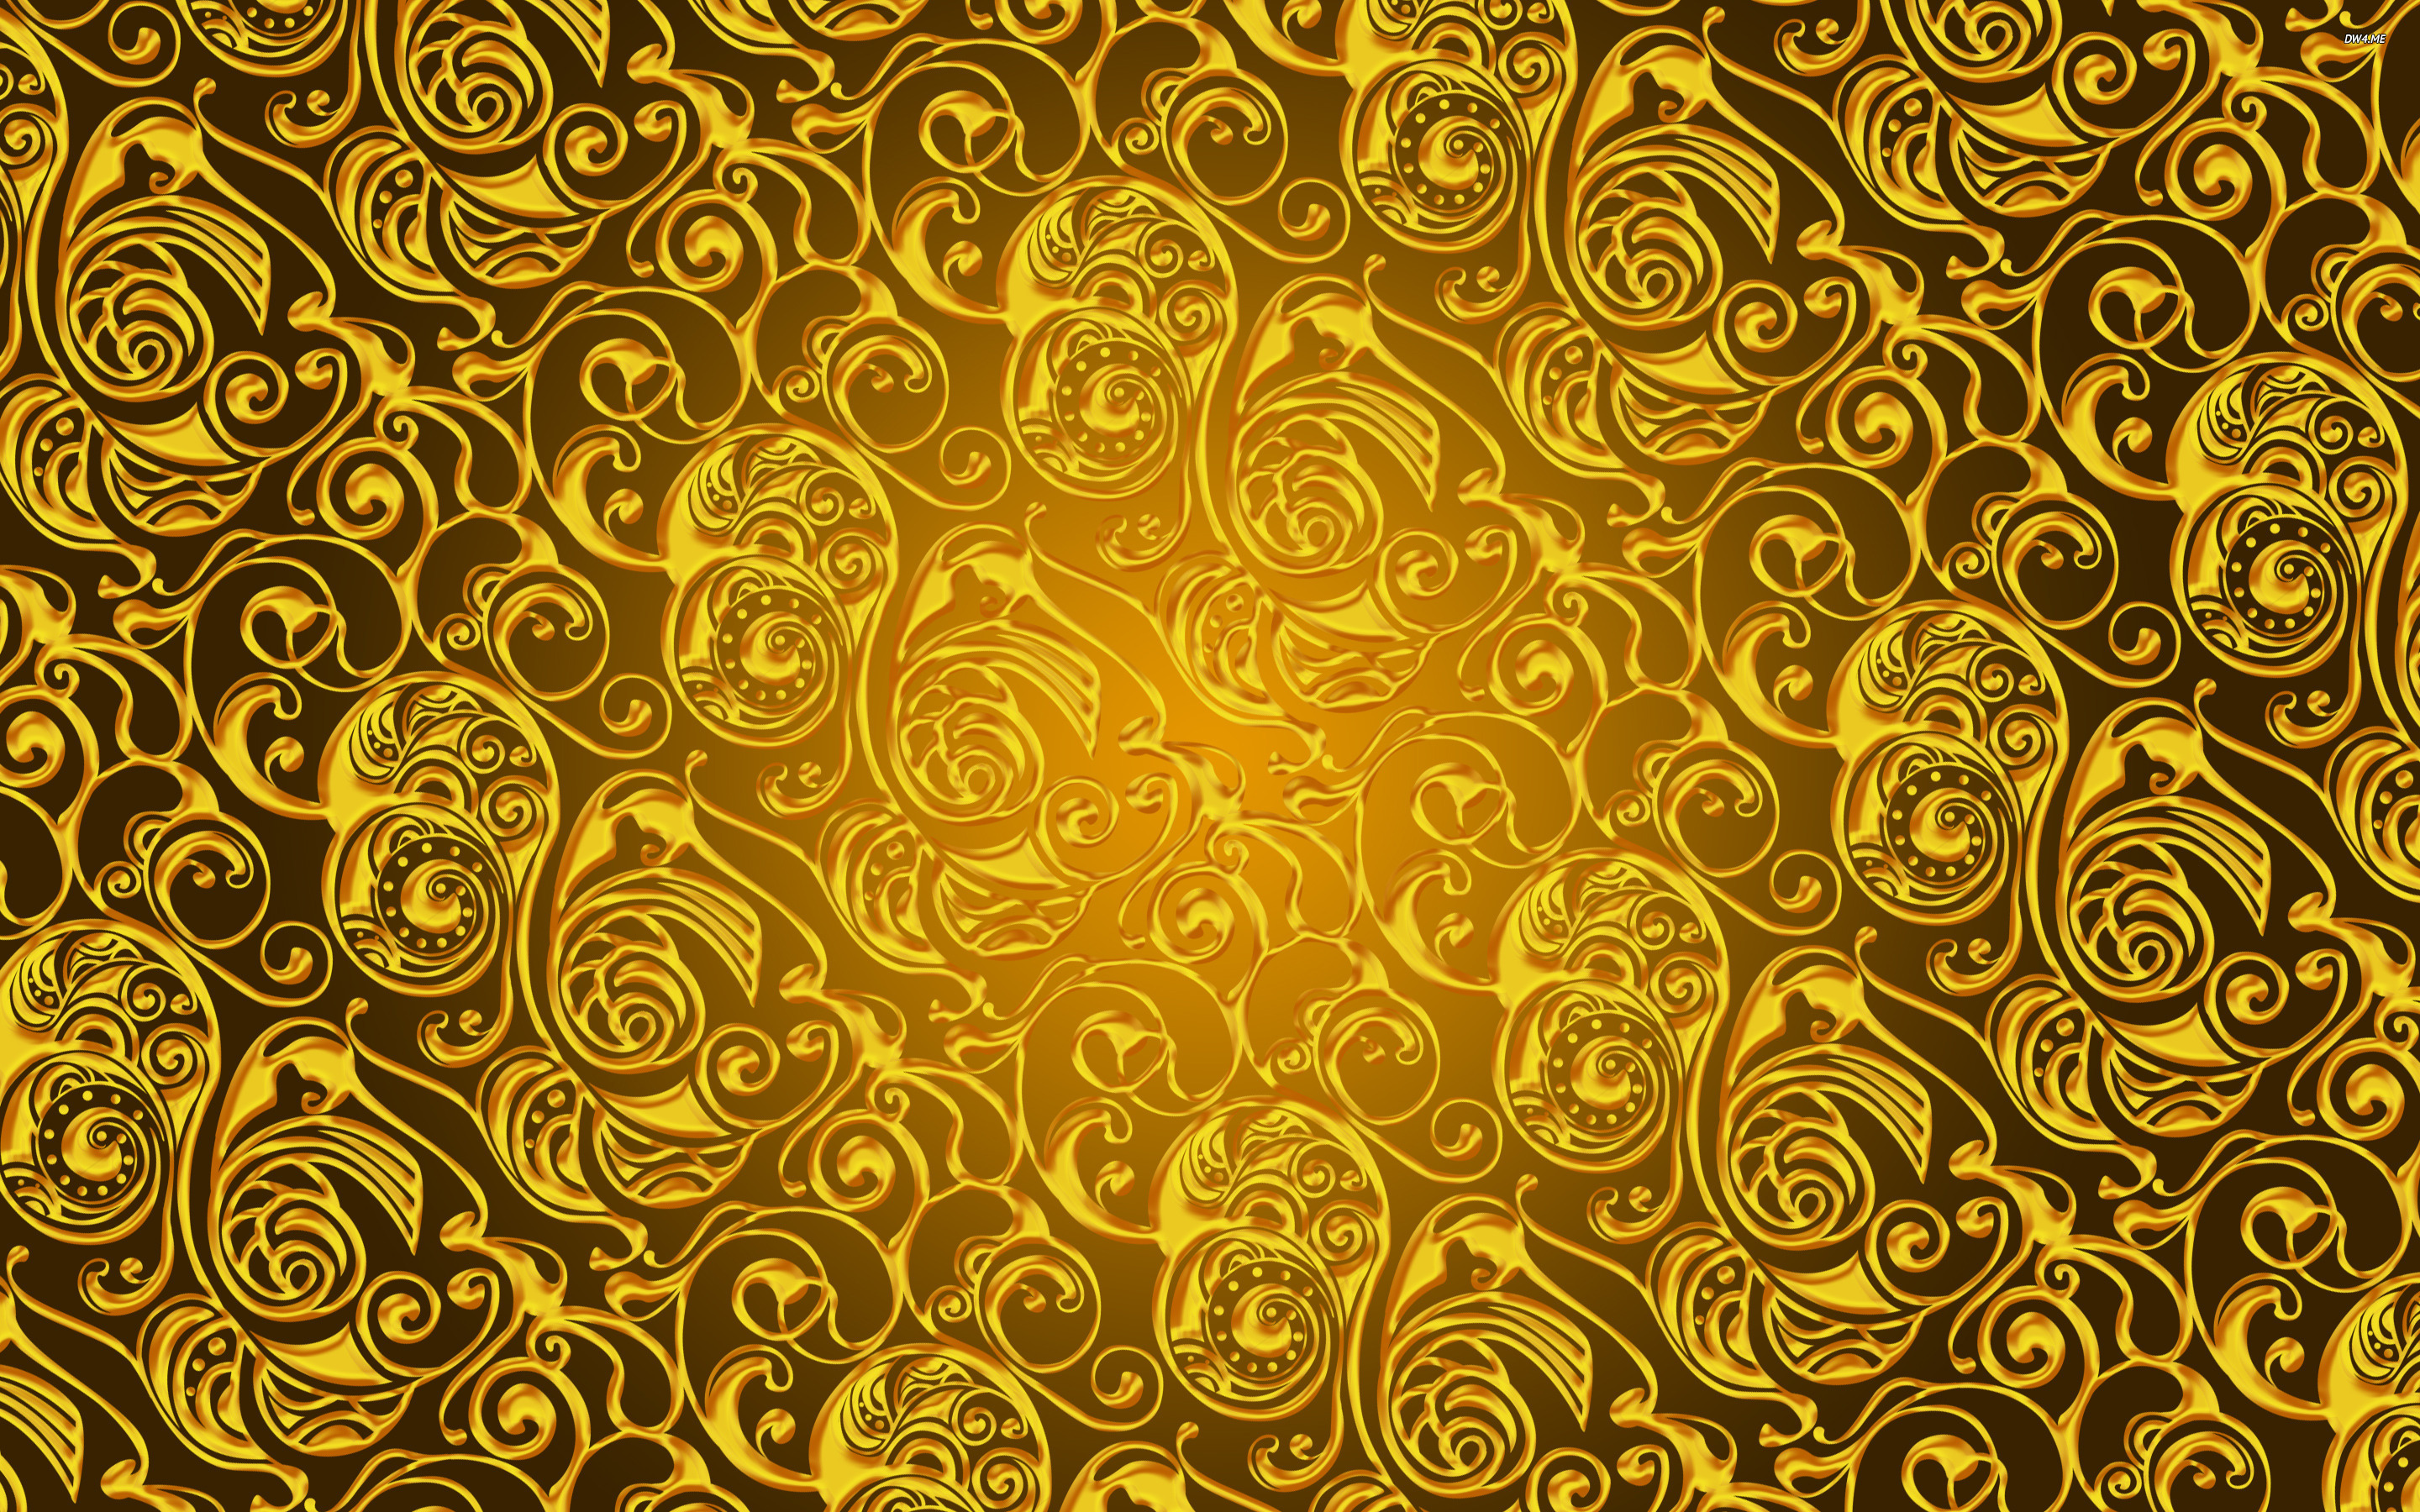 Gold Pattern wallpapers HD   571860 2880x1800